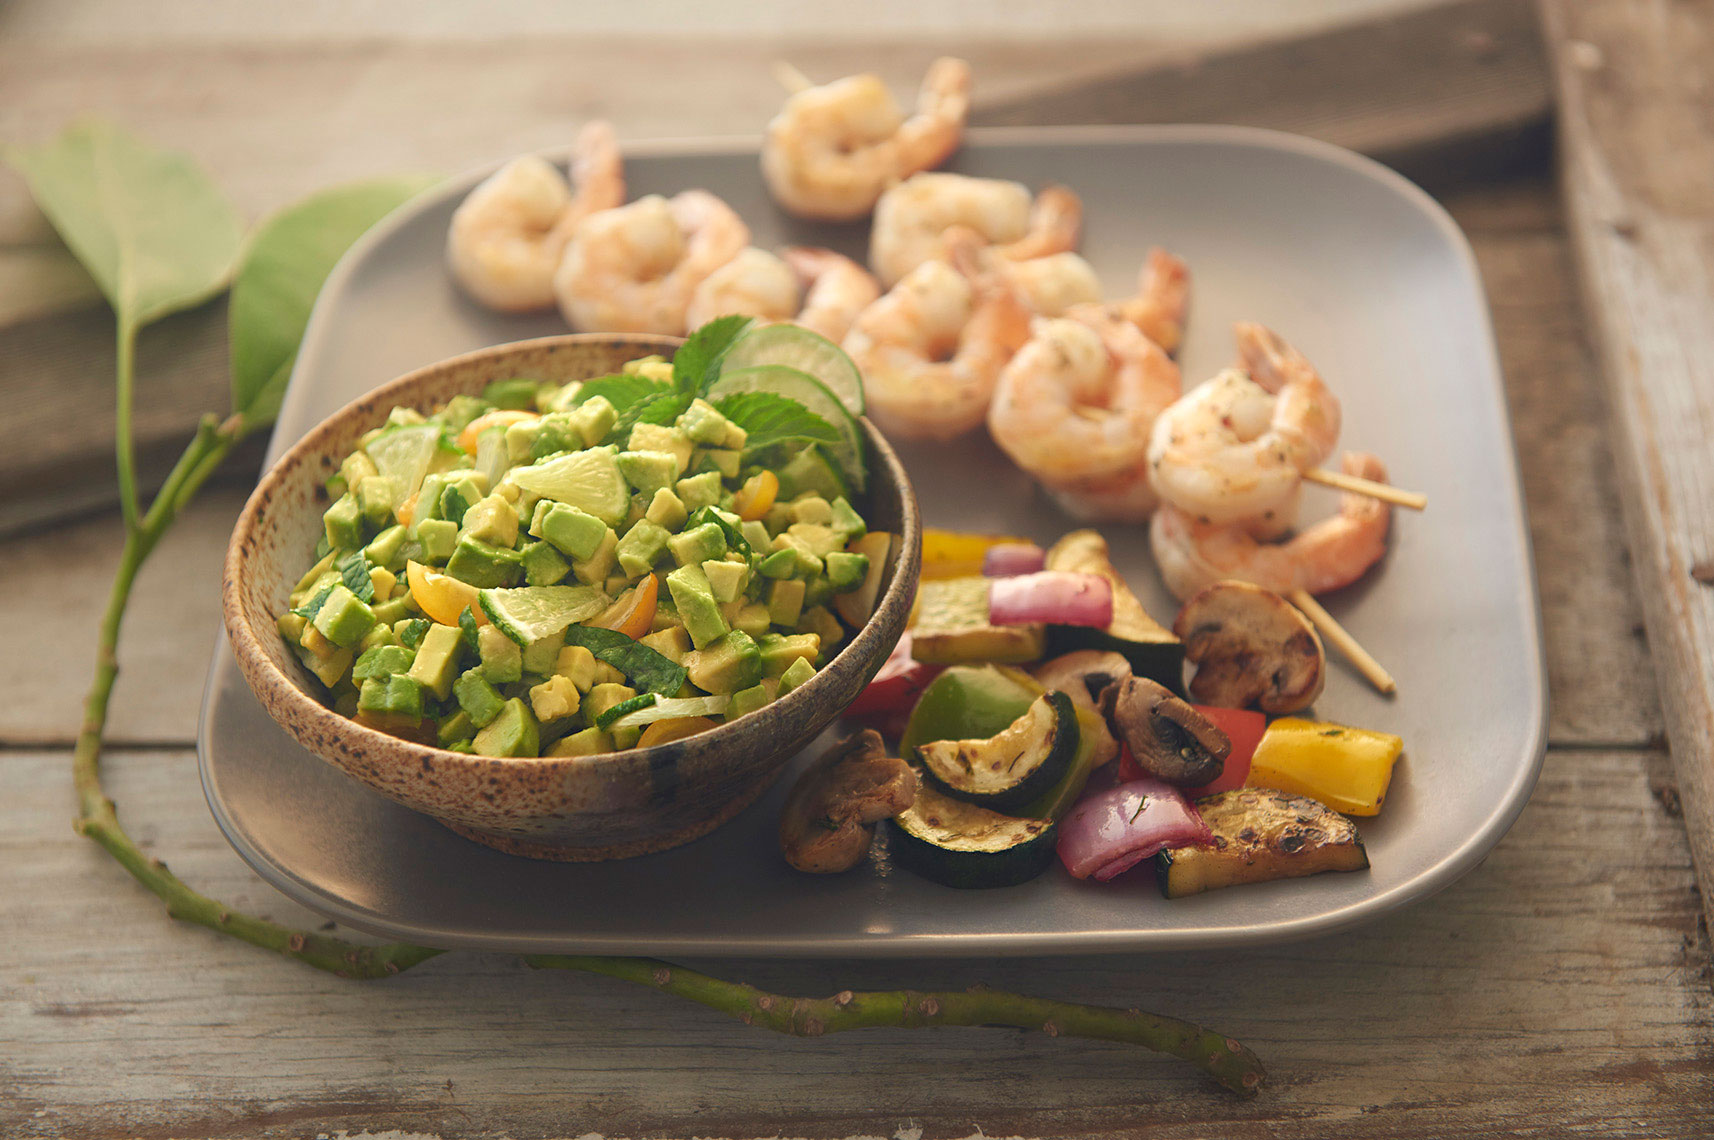 Beautiful-food-photography-of-grilled-shrimp-skewers-and-summer-vegetables-with-mint-lime-avocado-relish